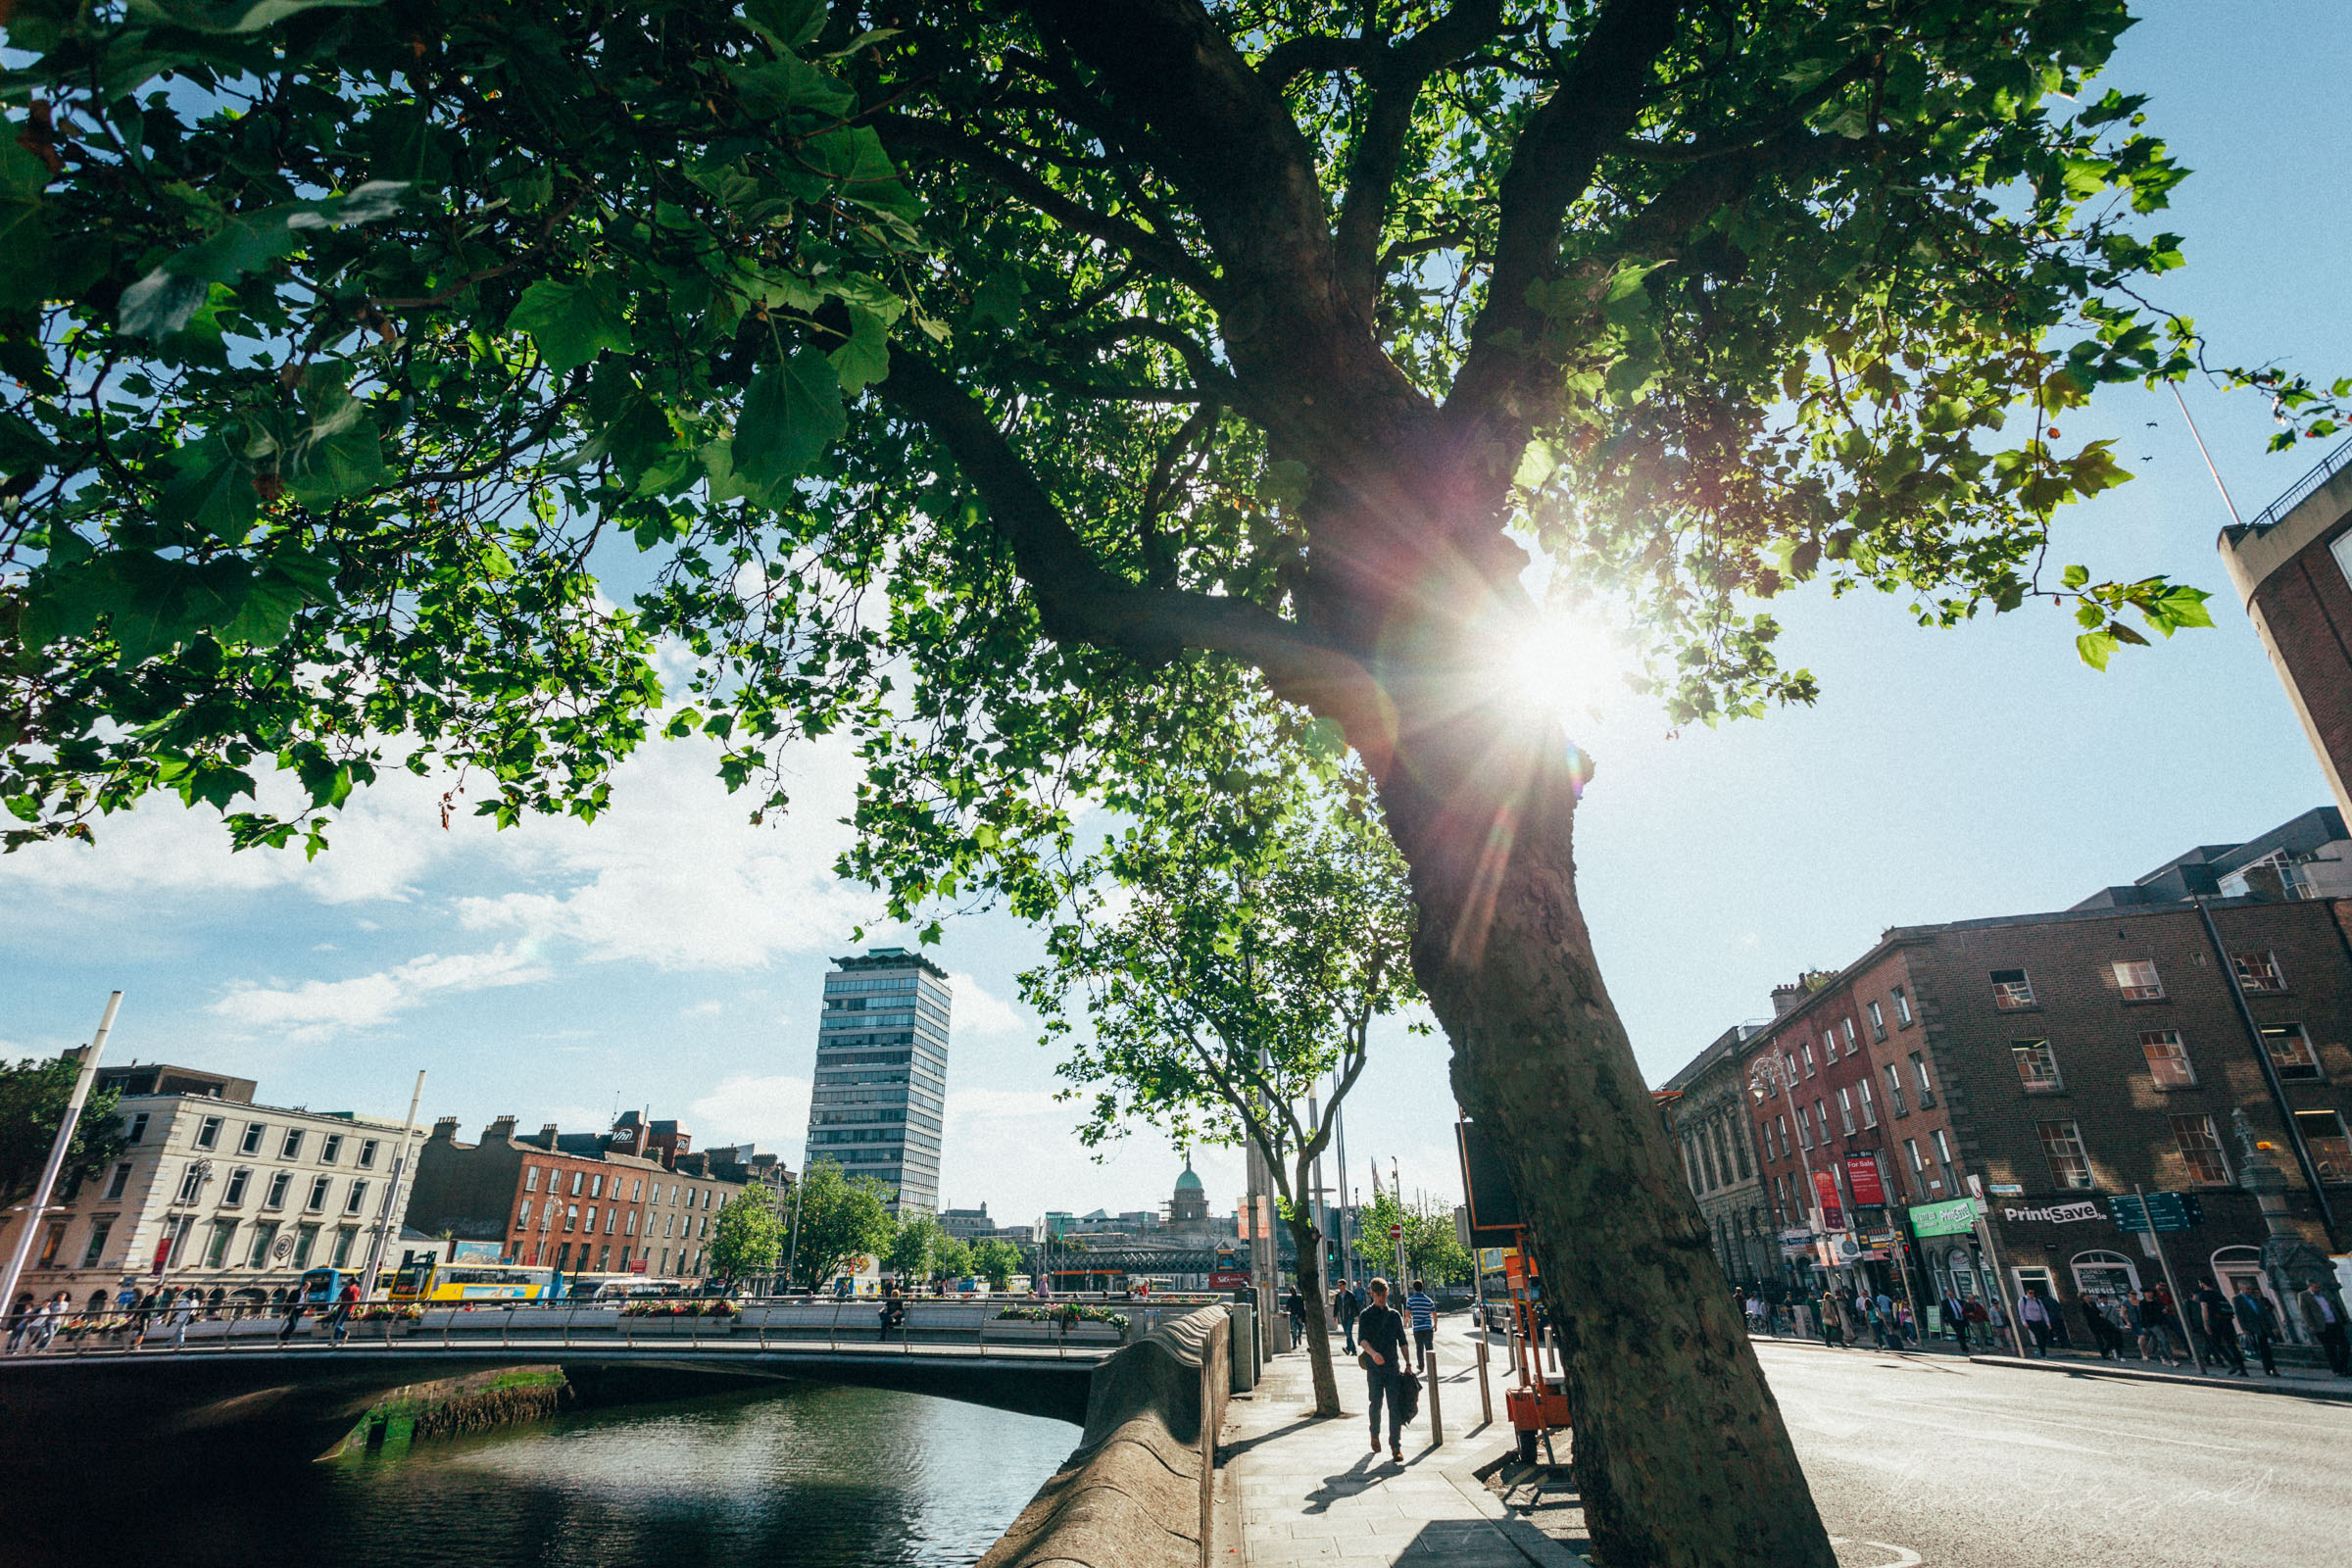 Early Morning Sunshine by the Liffey